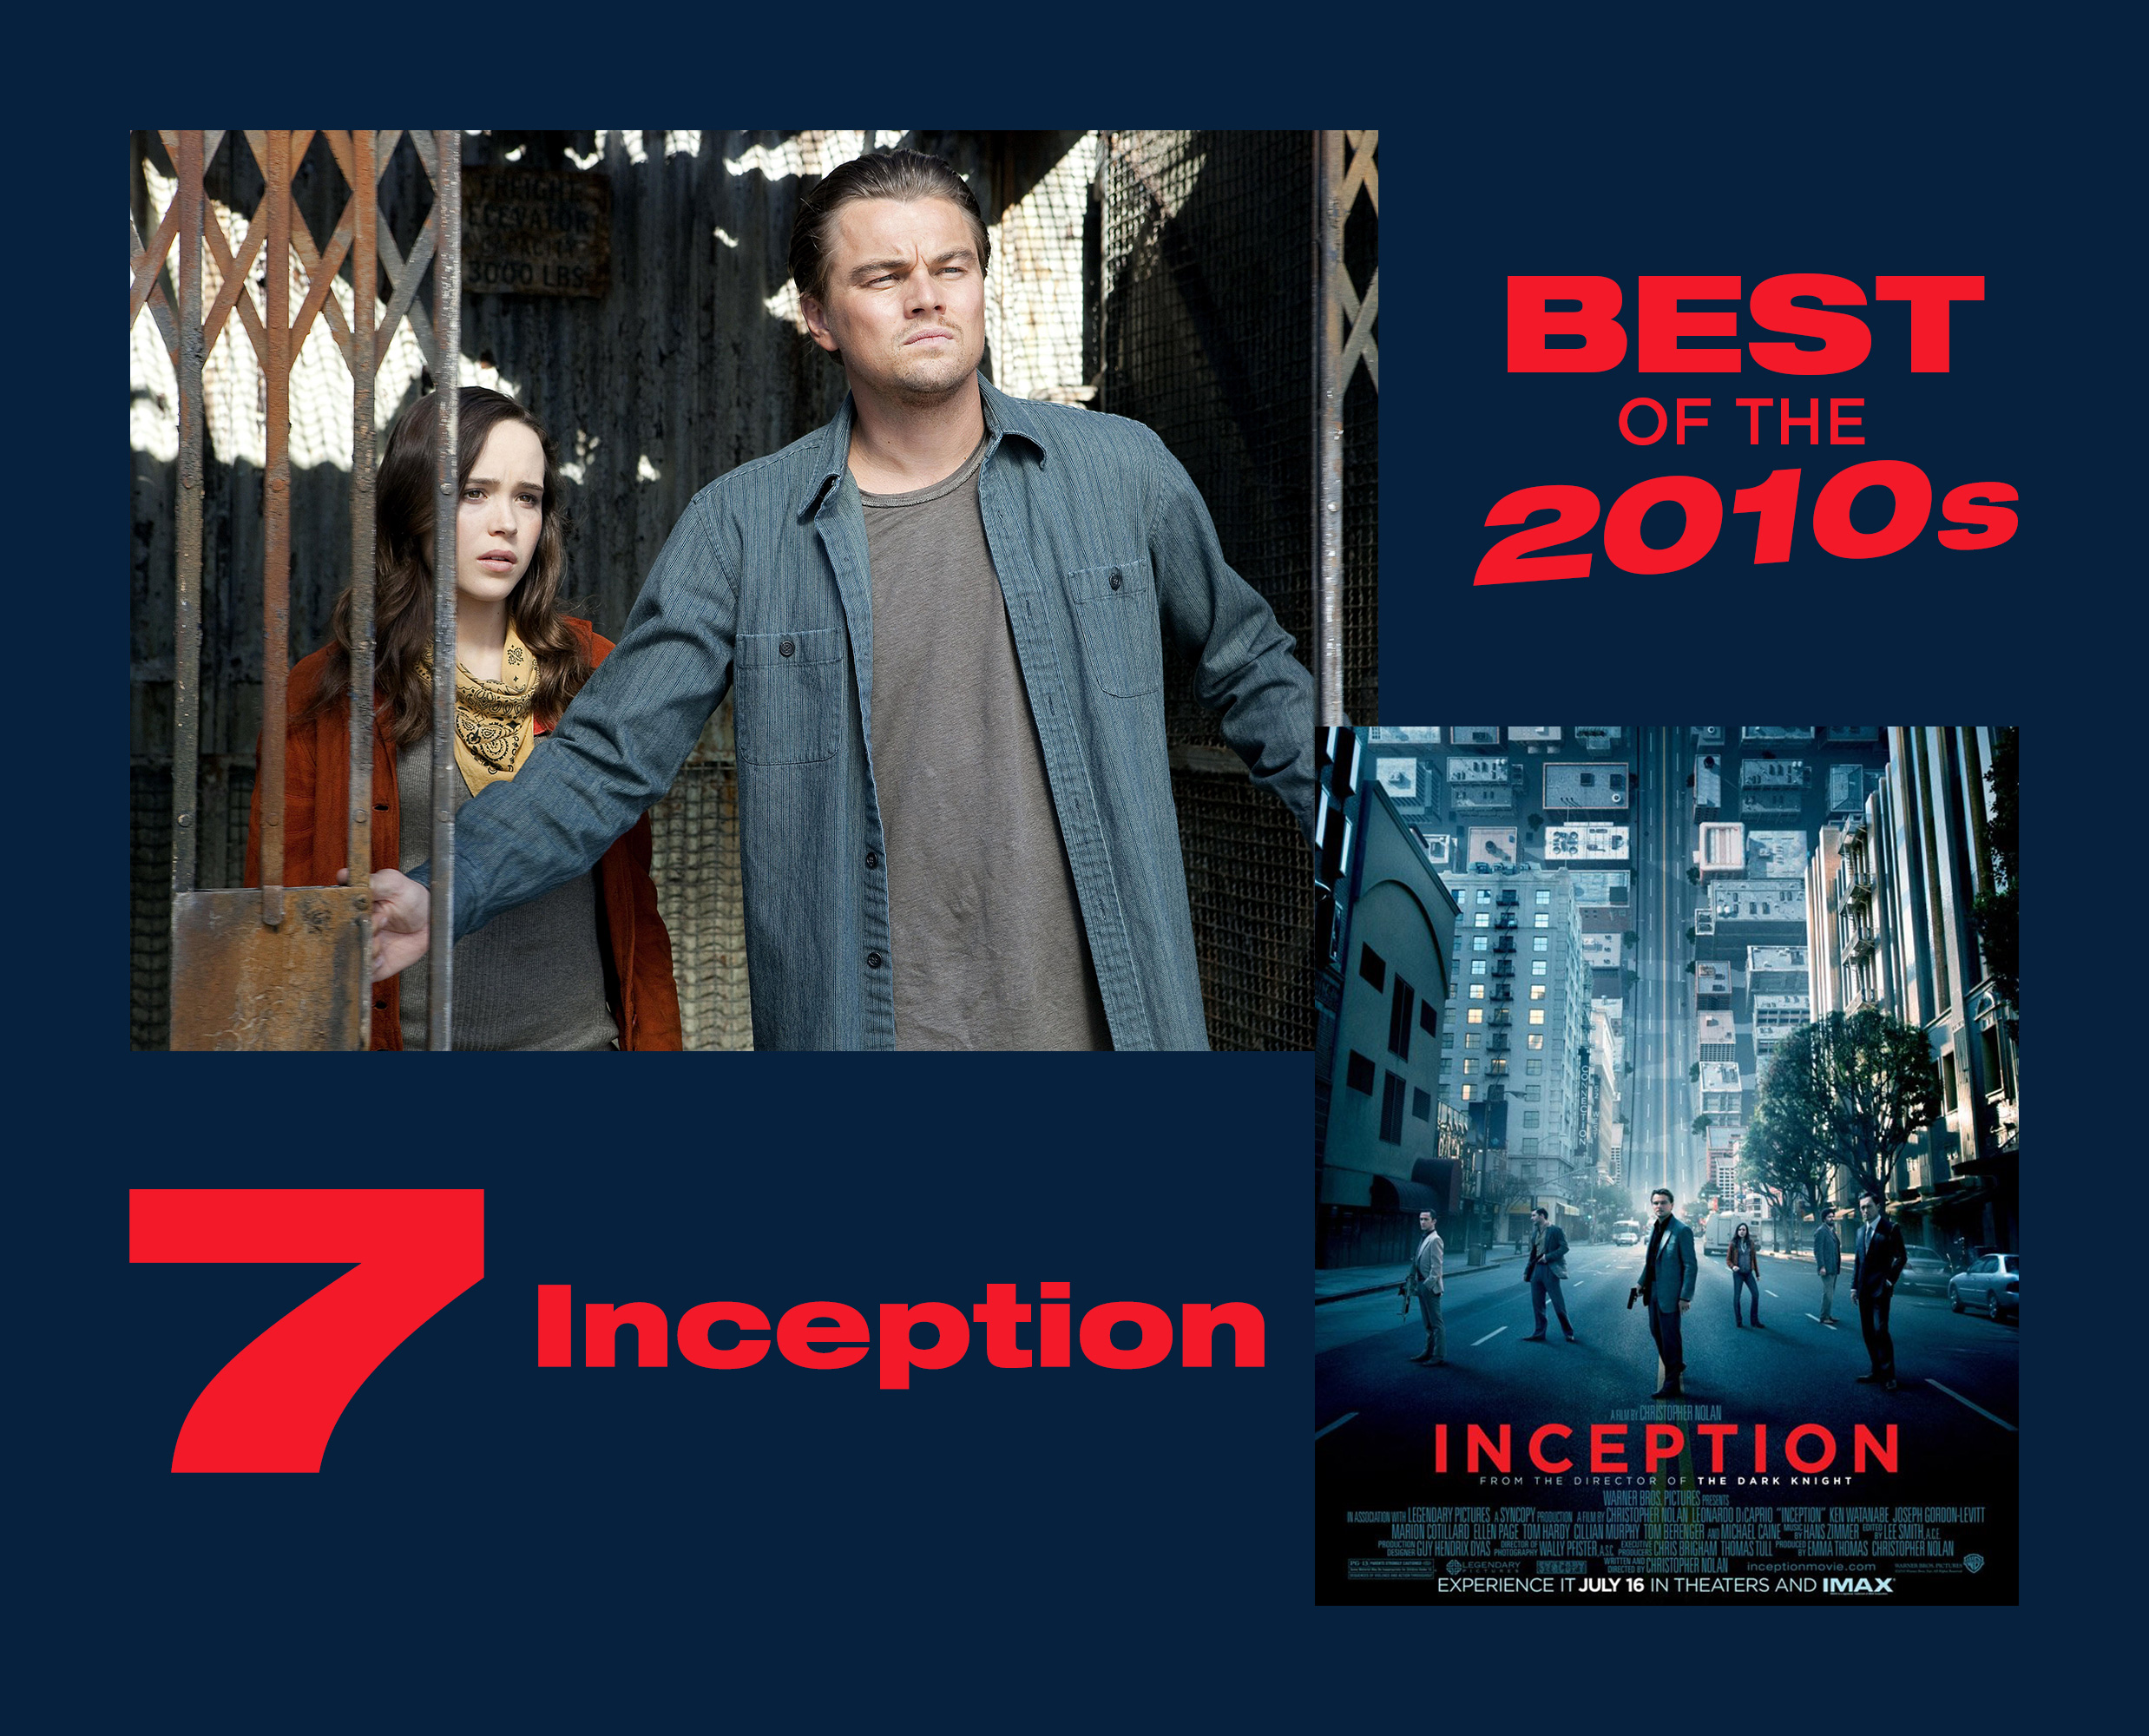 Films of the decade